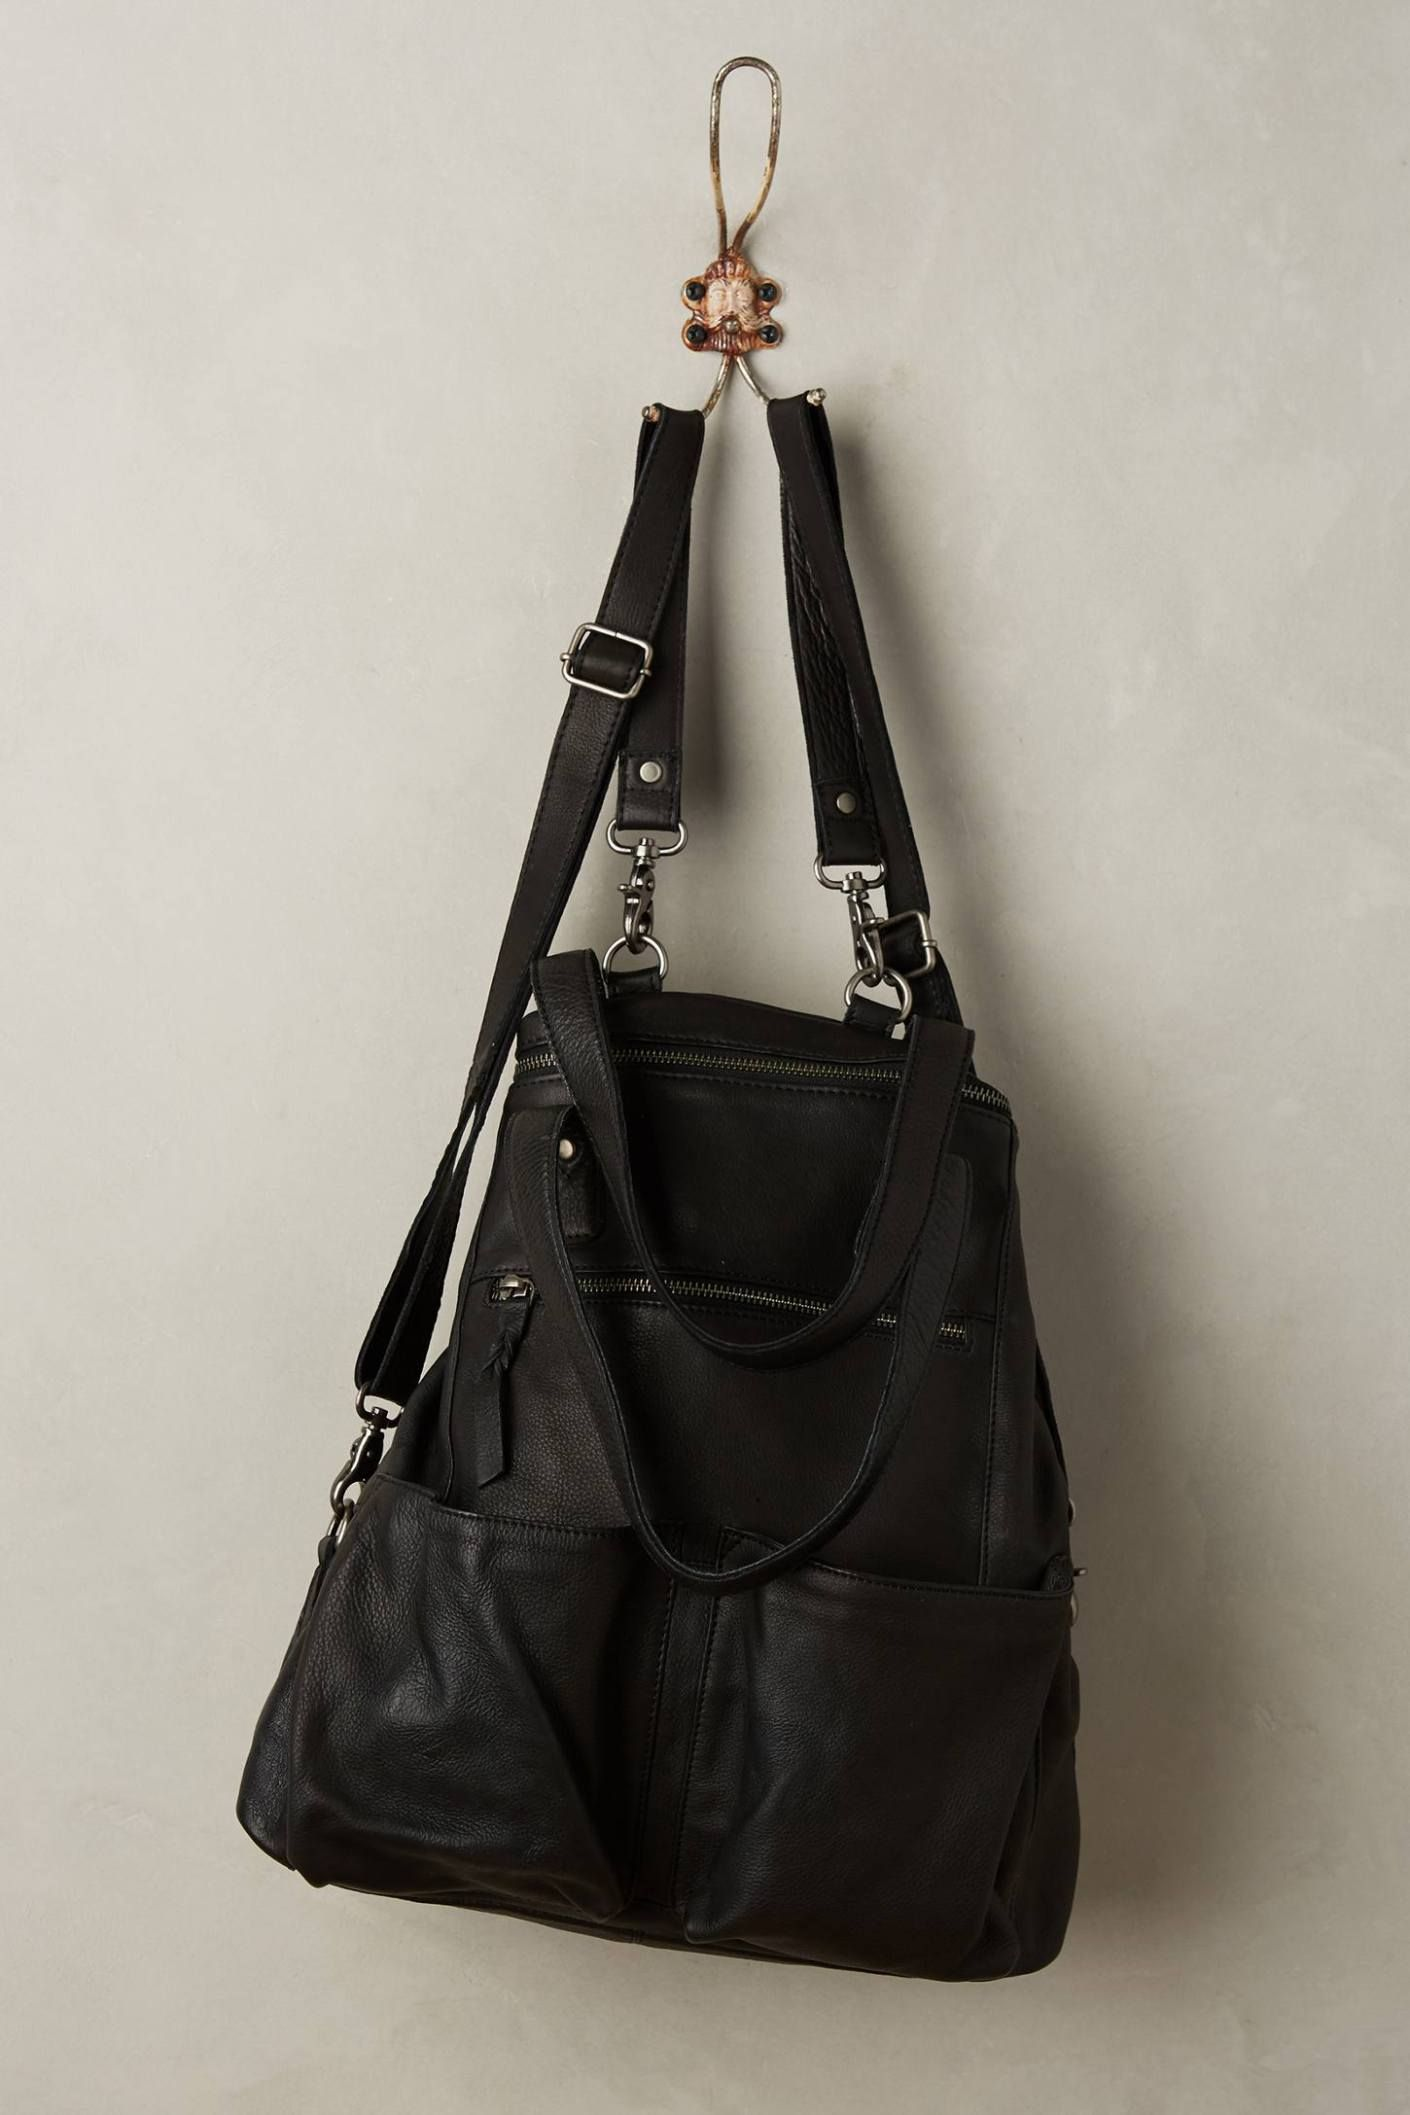 Anthropologie's New Arrivals: Bags & Totes | Convertible ...